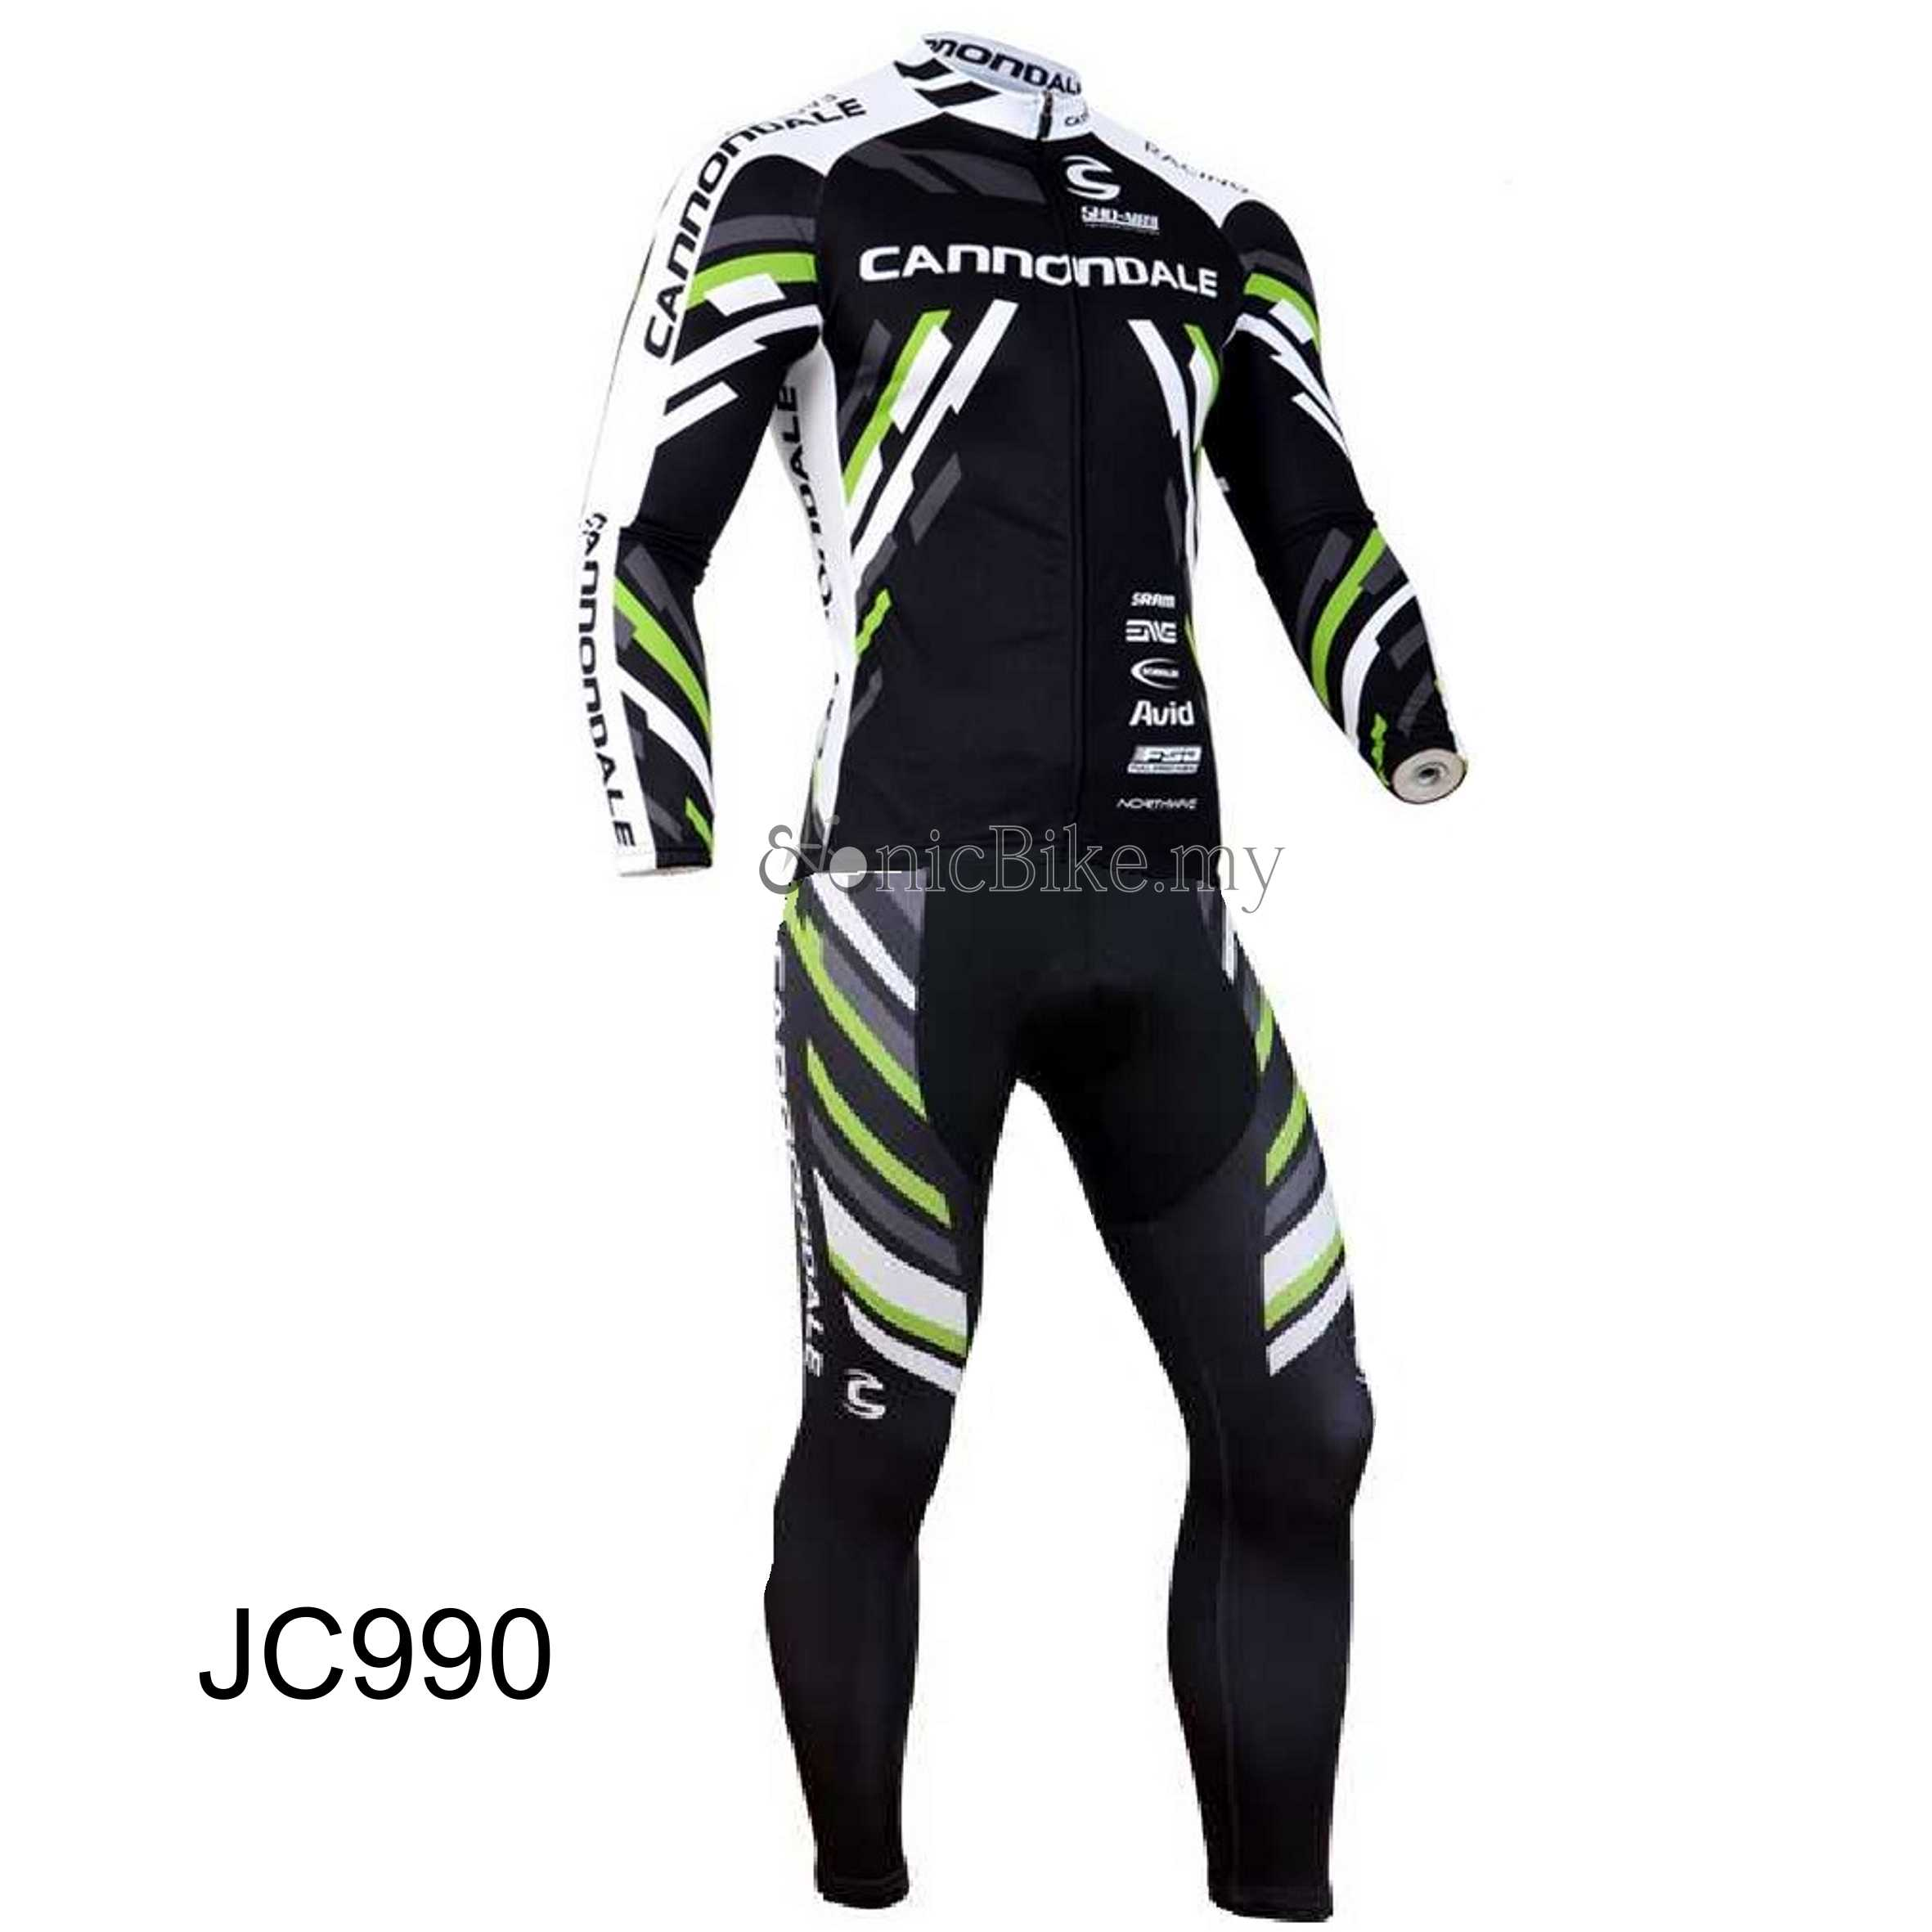 Cannondale clothing online